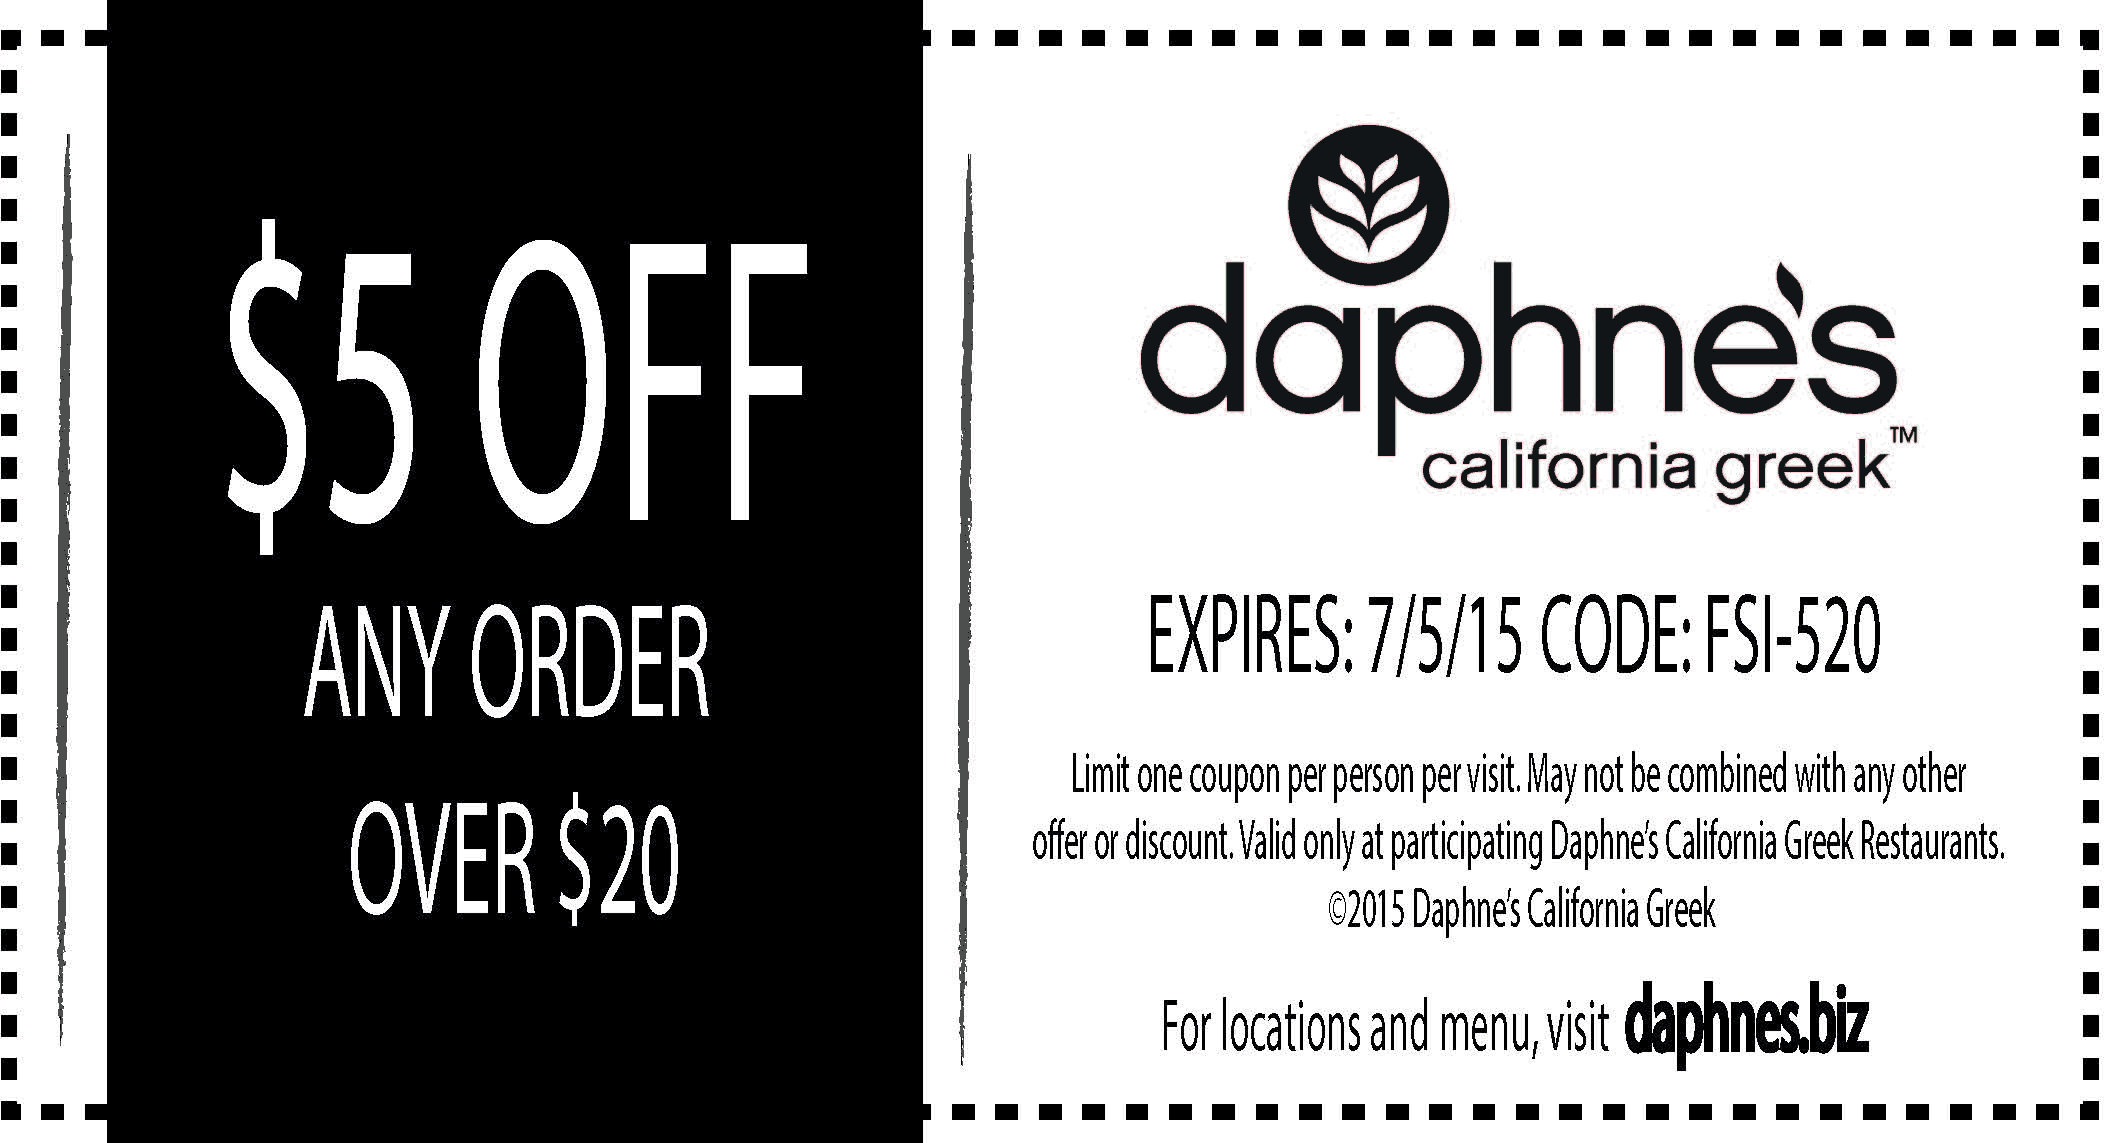 Daphnes California Greek Coupon August 2017 $5 off $20 at Daphnes California Greek restaurants